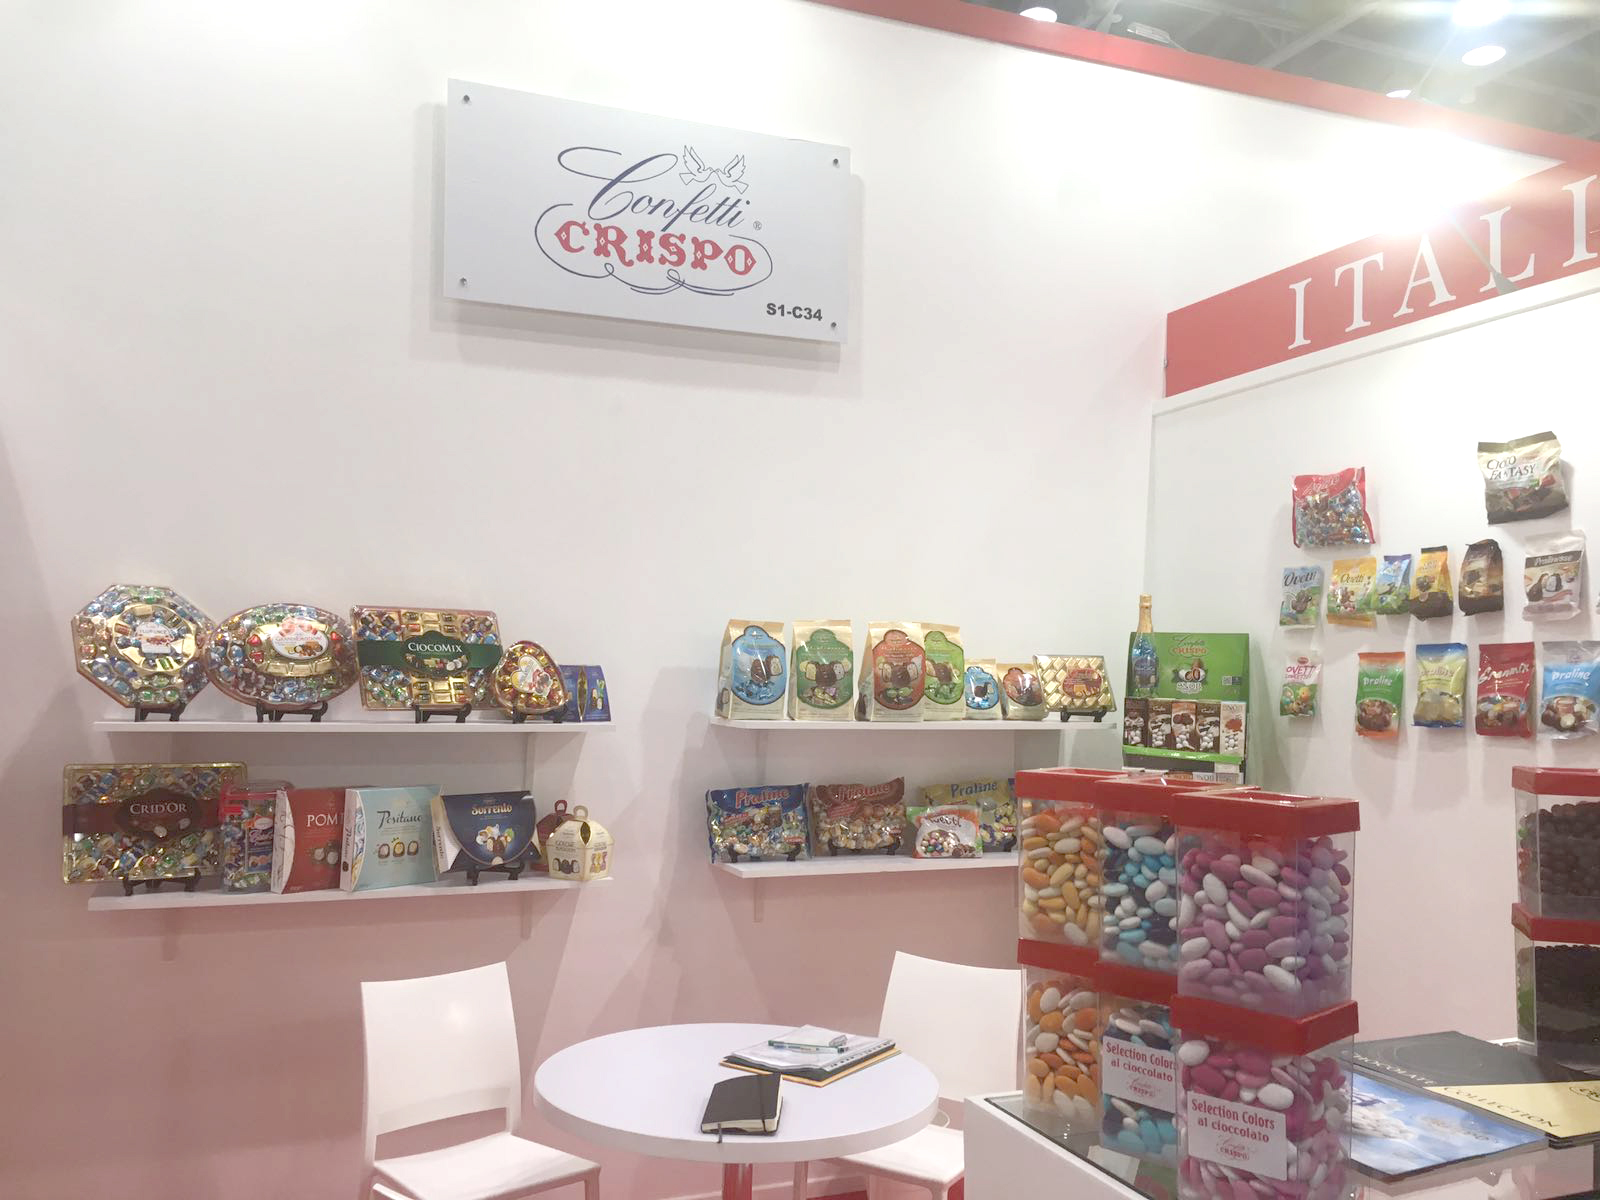 Confetti Crispo at Gulfood festival in Dubai